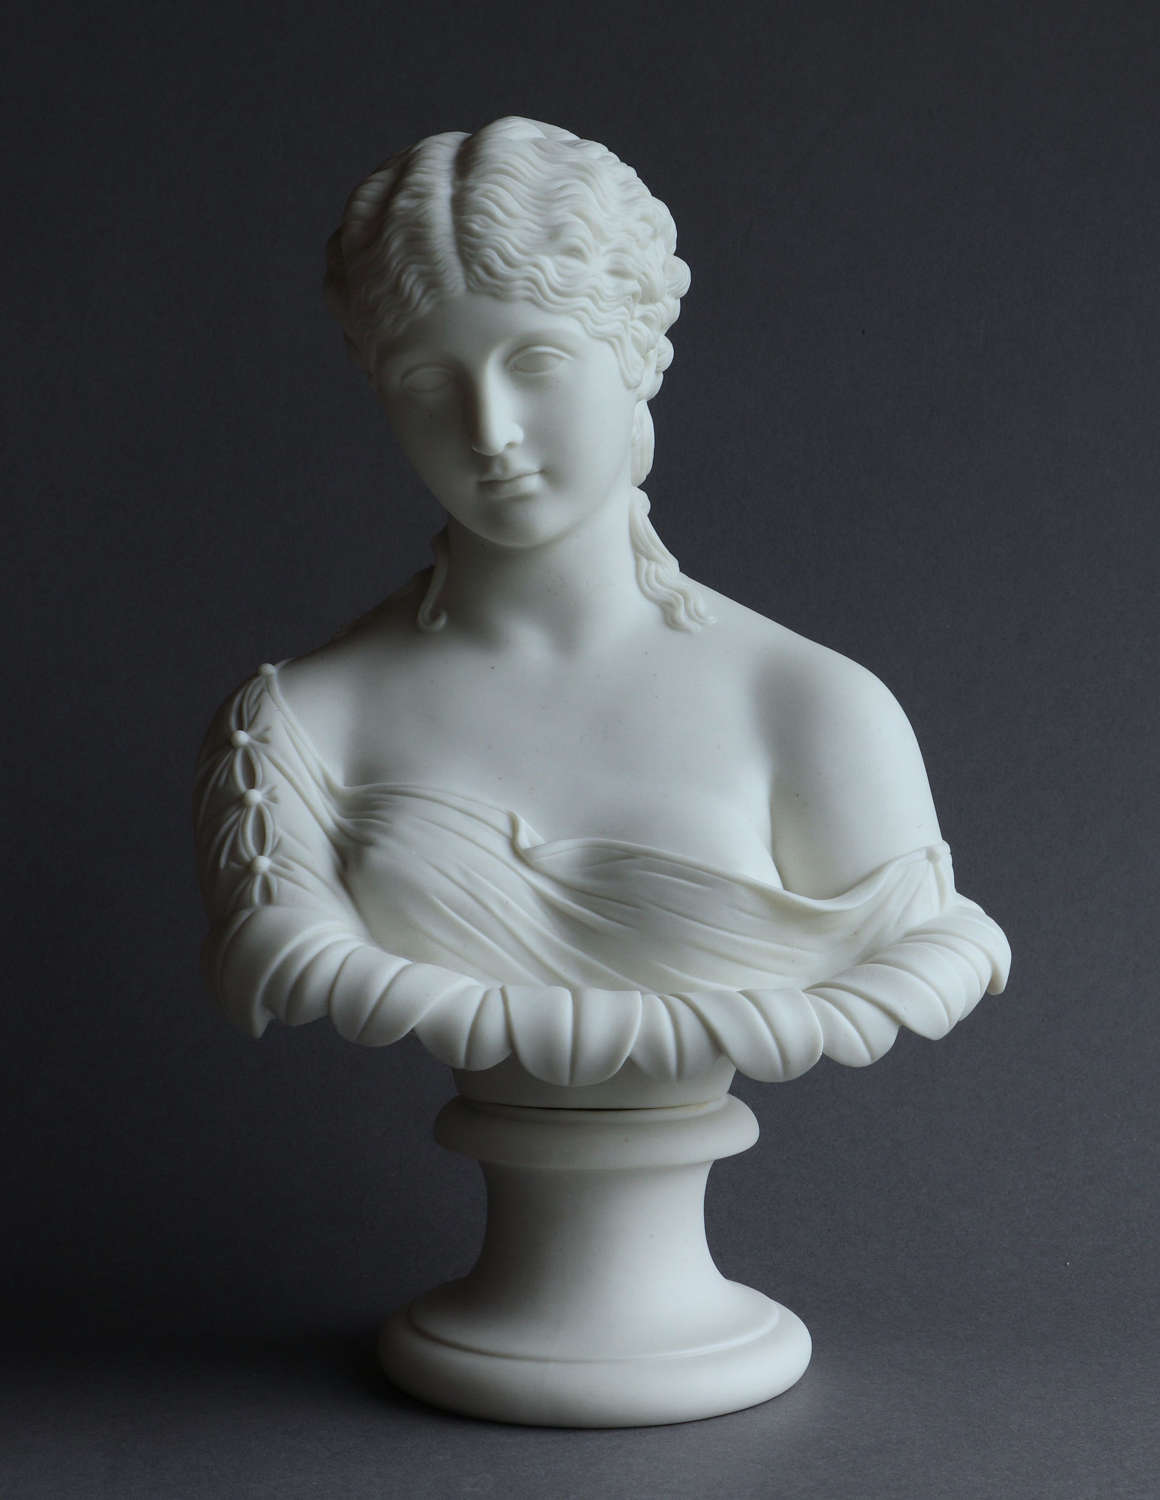 A Parian bust of Clytie from the antique